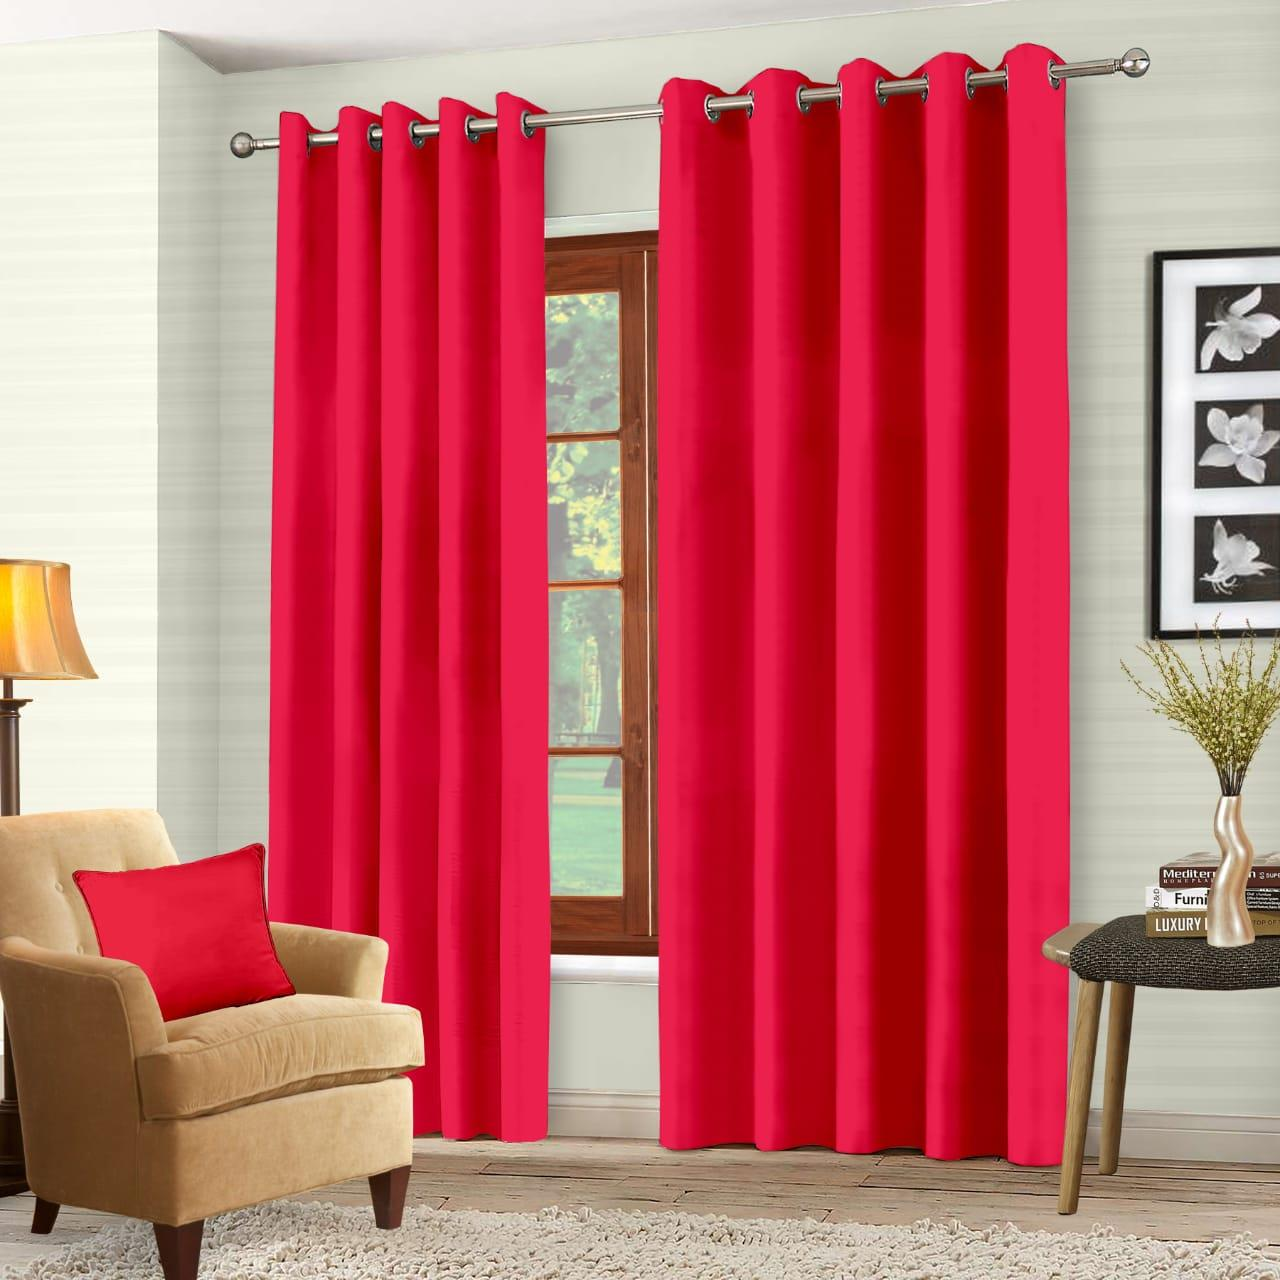 Luxury-Thermal-Blackout-Eyelet-Ring-Top-Curtains-Pair-with-tie-backs thumbnail 40